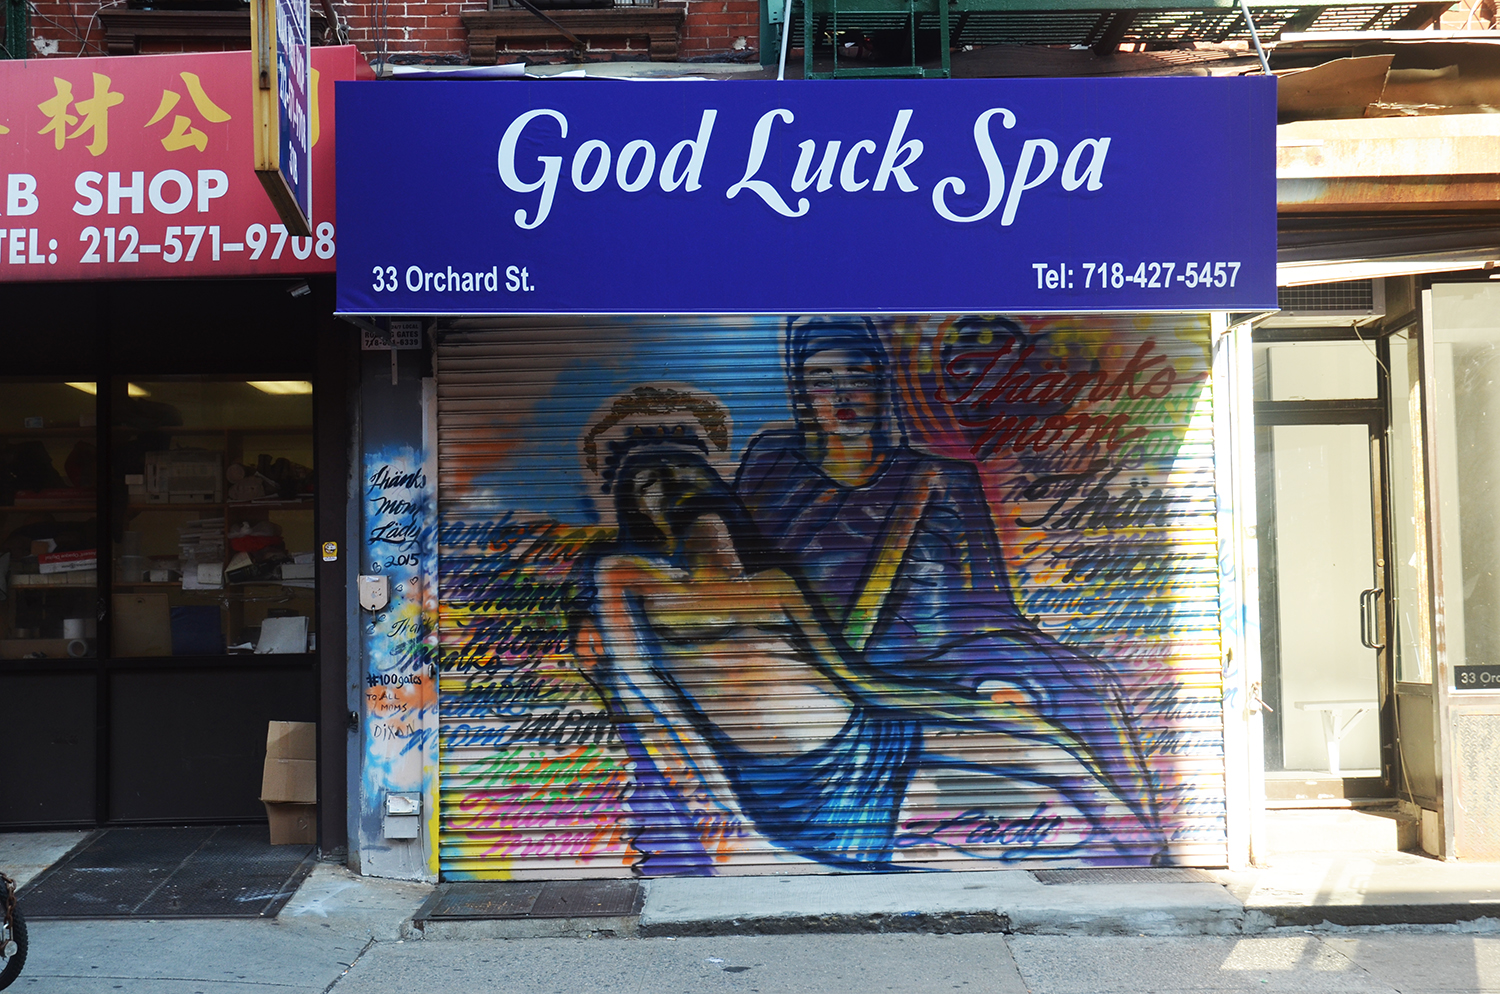 100 Gates - Good Luck Spa at 33 Orchard Street by Lady Millard